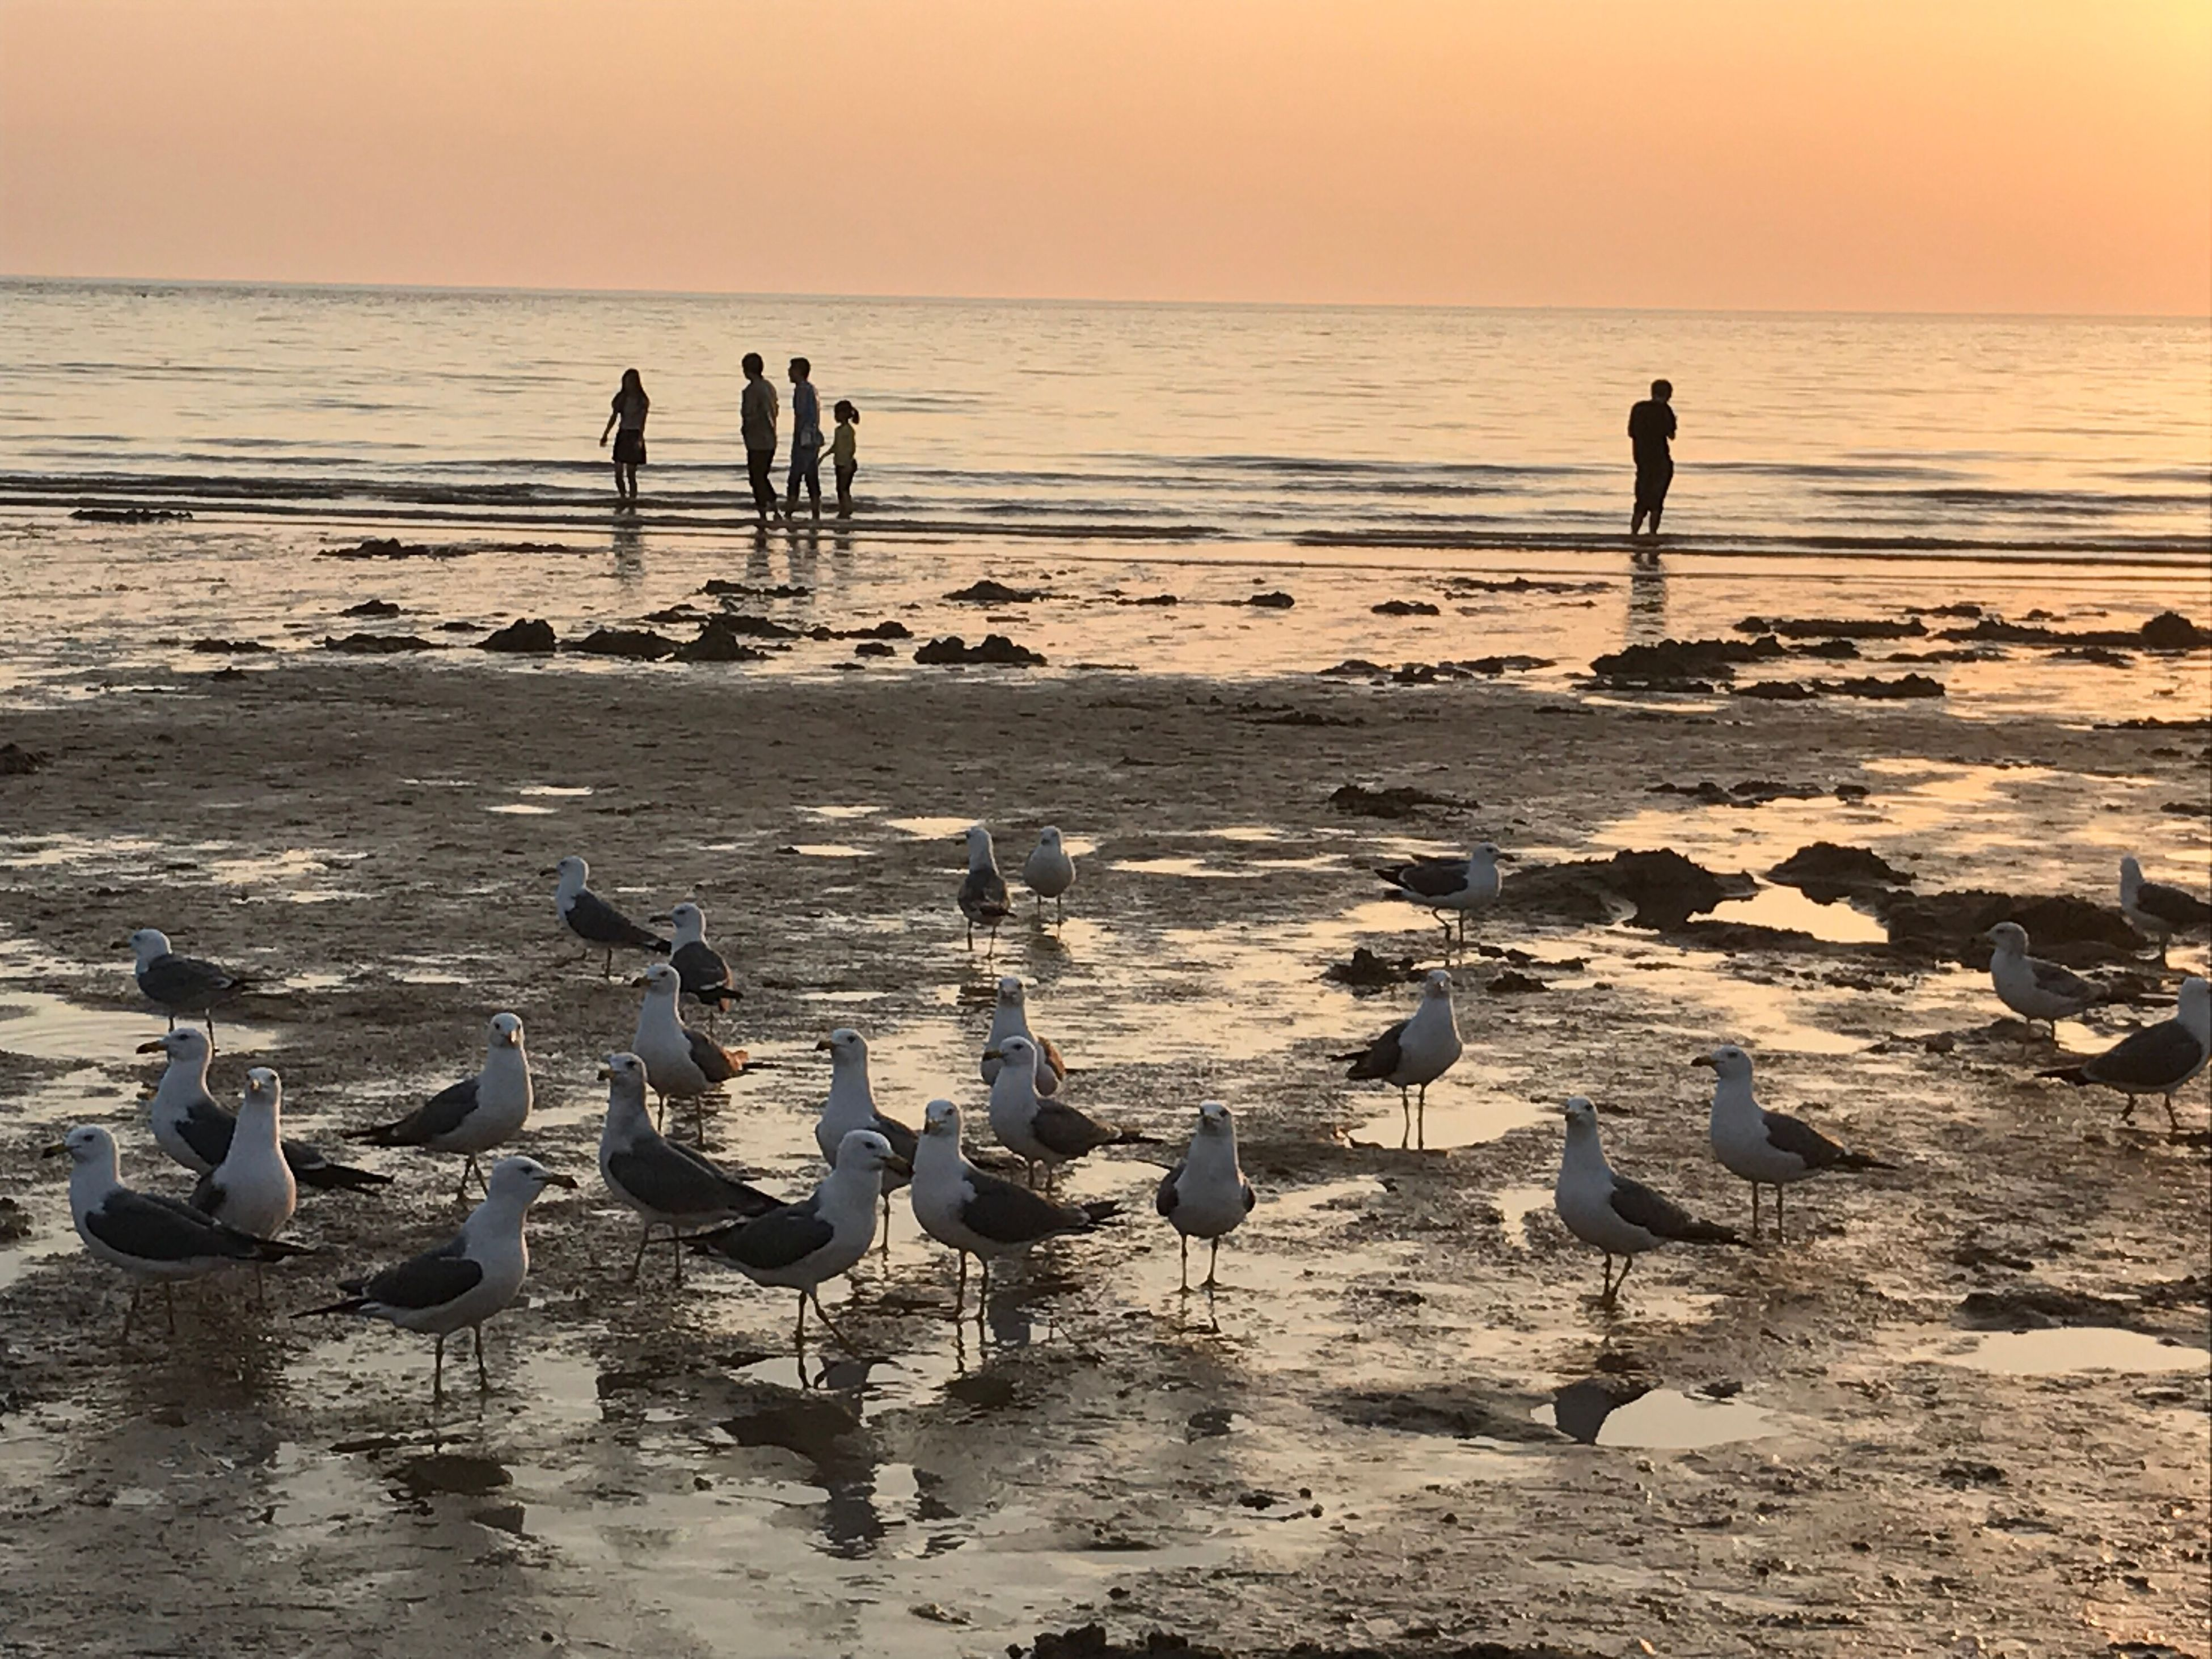 water, sunset, nature, beach, beauty in nature, sea, bird, animals in the wild, large group of animals, animal themes, scenics, horizon over water, sand, tranquility, silhouette, outdoors, sky, animal wildlife, standing, no people, day